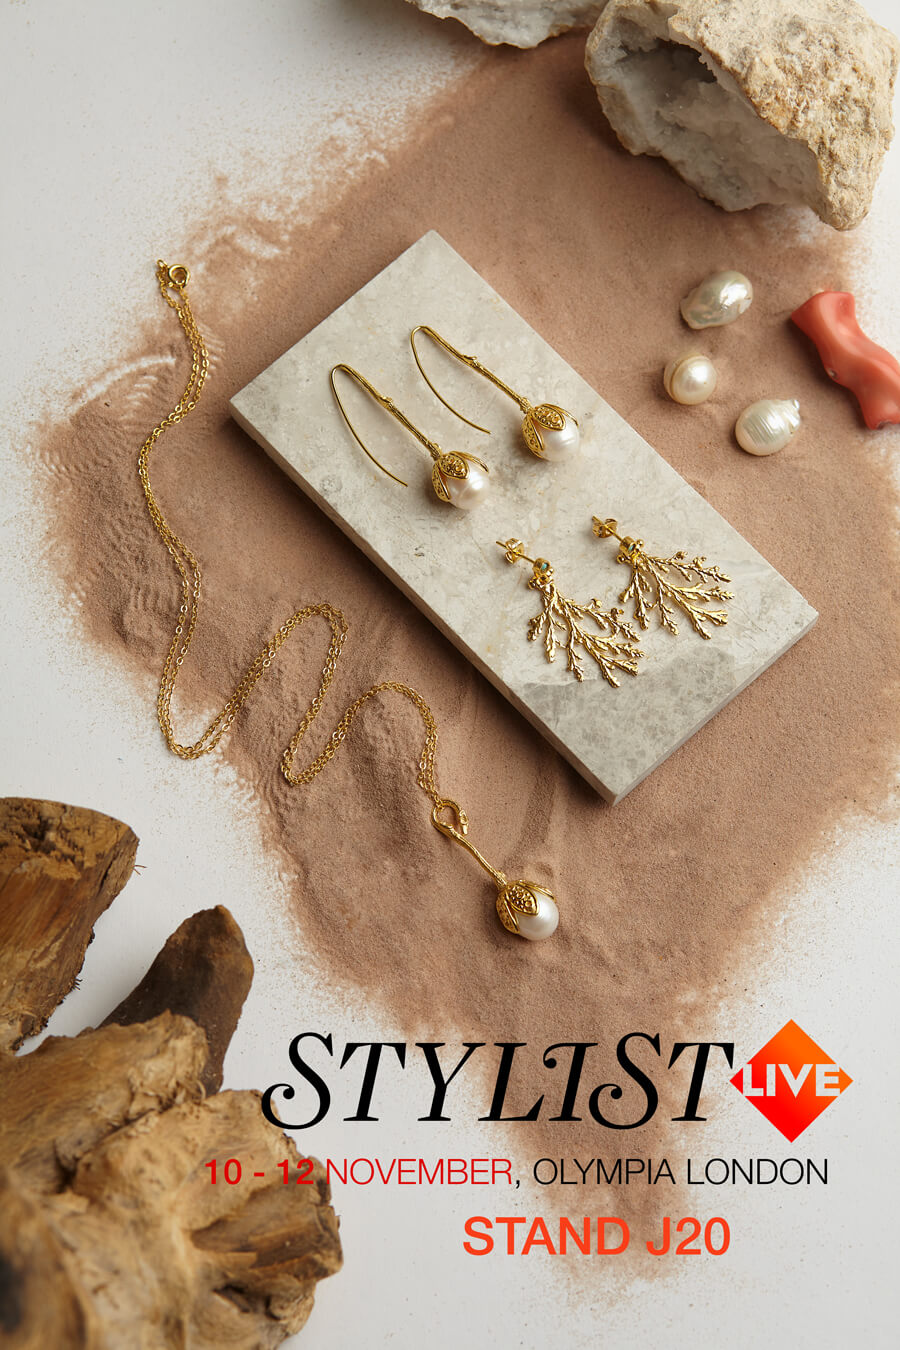 Ottoman Hands at Stylist Live